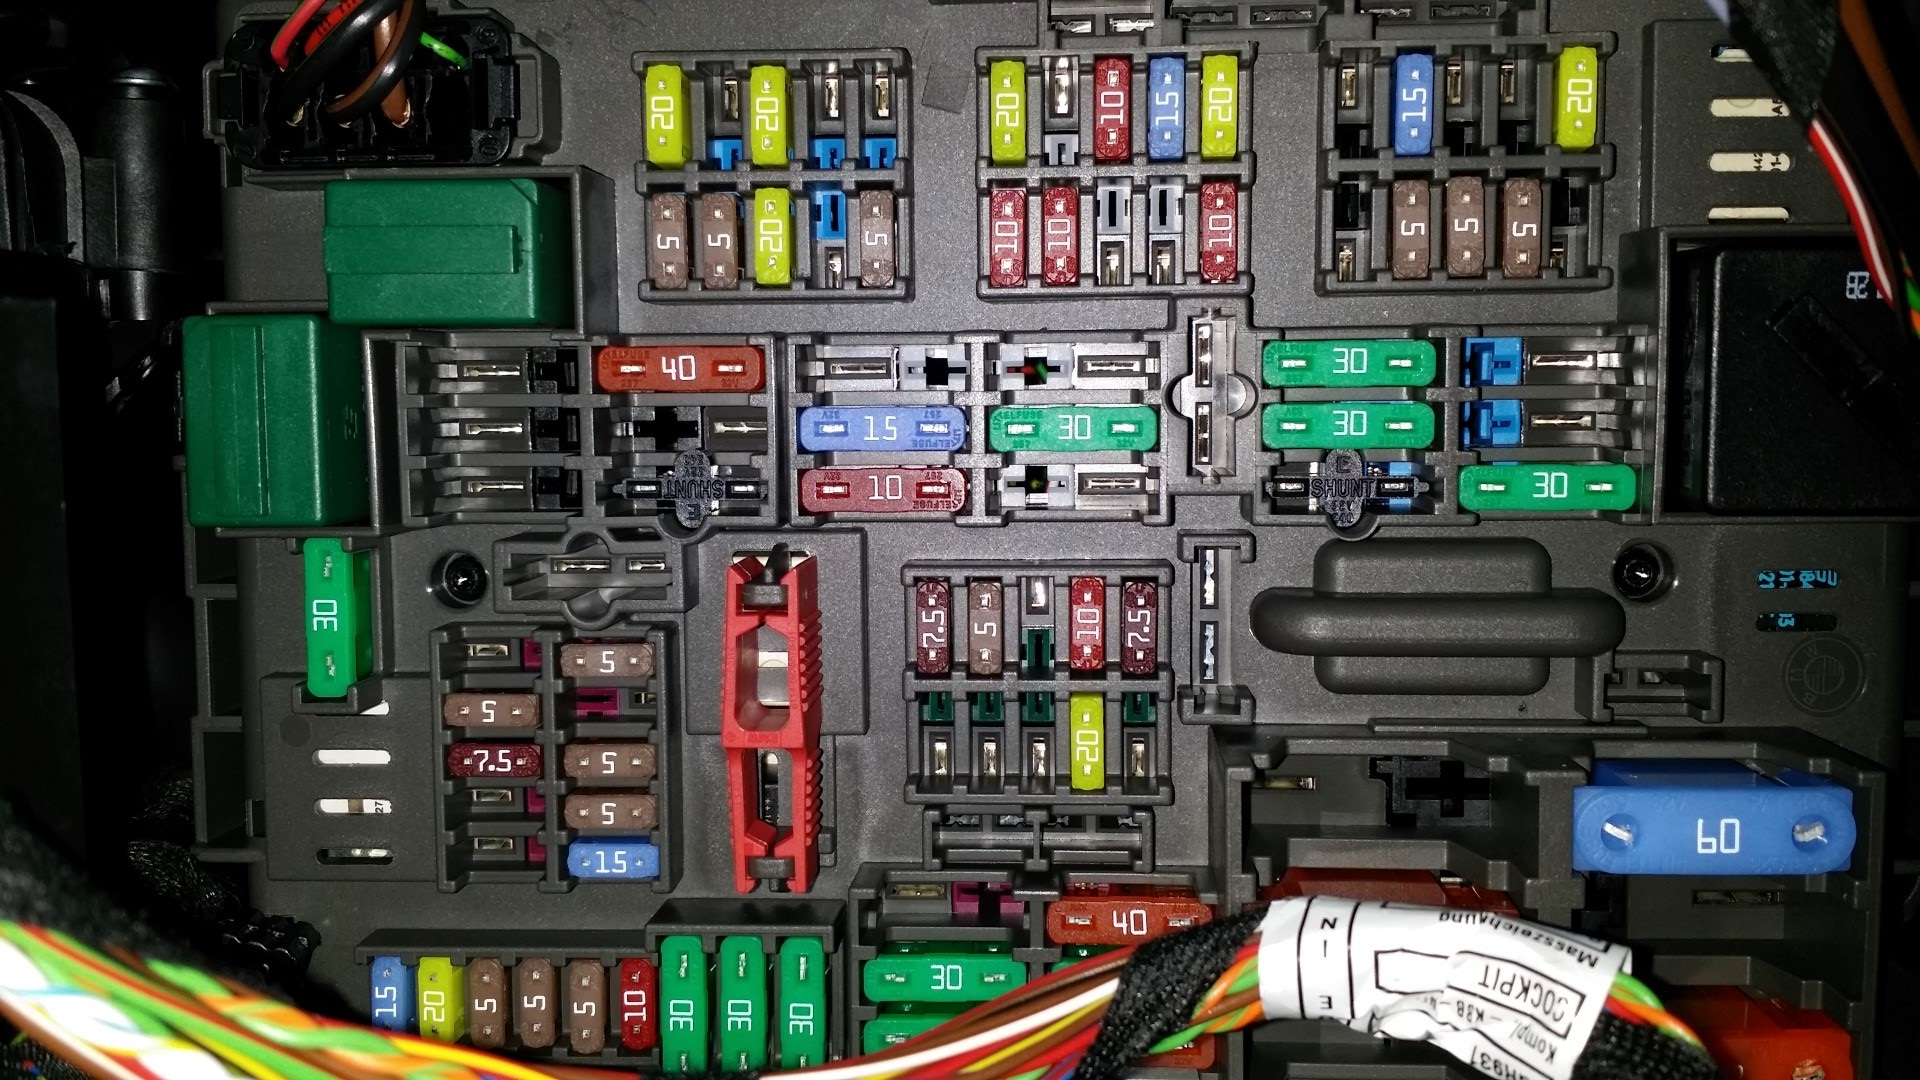 Good Switched 12v Circuit In The Fuse Panel For Radar Detectors Gps Homelink Wiring Diagram This Is 2nd 5a Slot Row From Top Note That Your X1 Depending On Year Trim Options And Maybe Regional Market